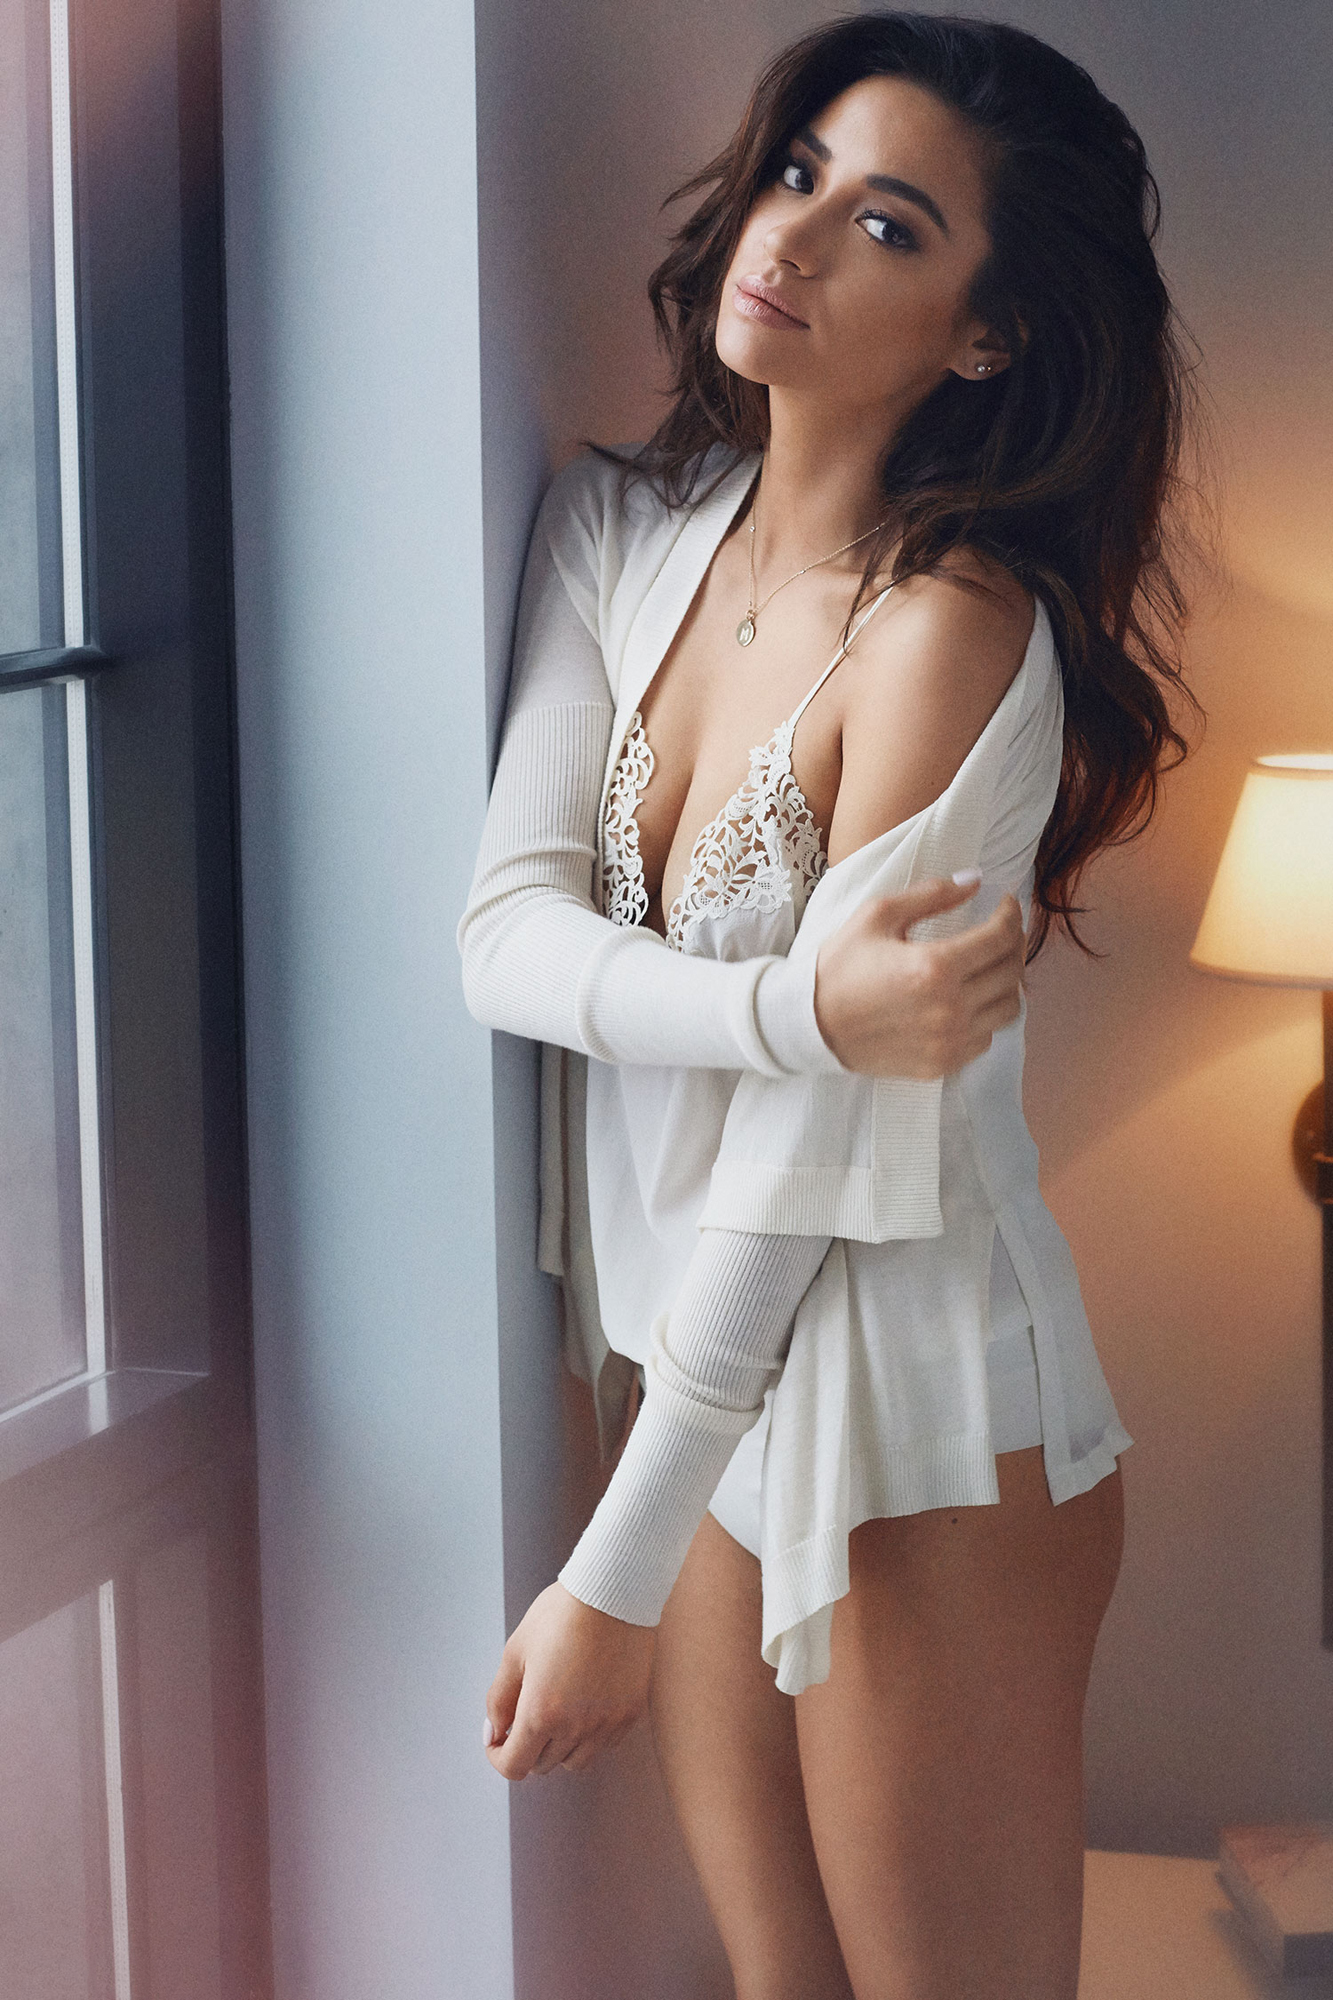 https://www.theplace.ru/archive/shay_mitchell/img/celeber_ru_shay_mitchell_maxim_magazine_photoshoot_2015_07.jpg